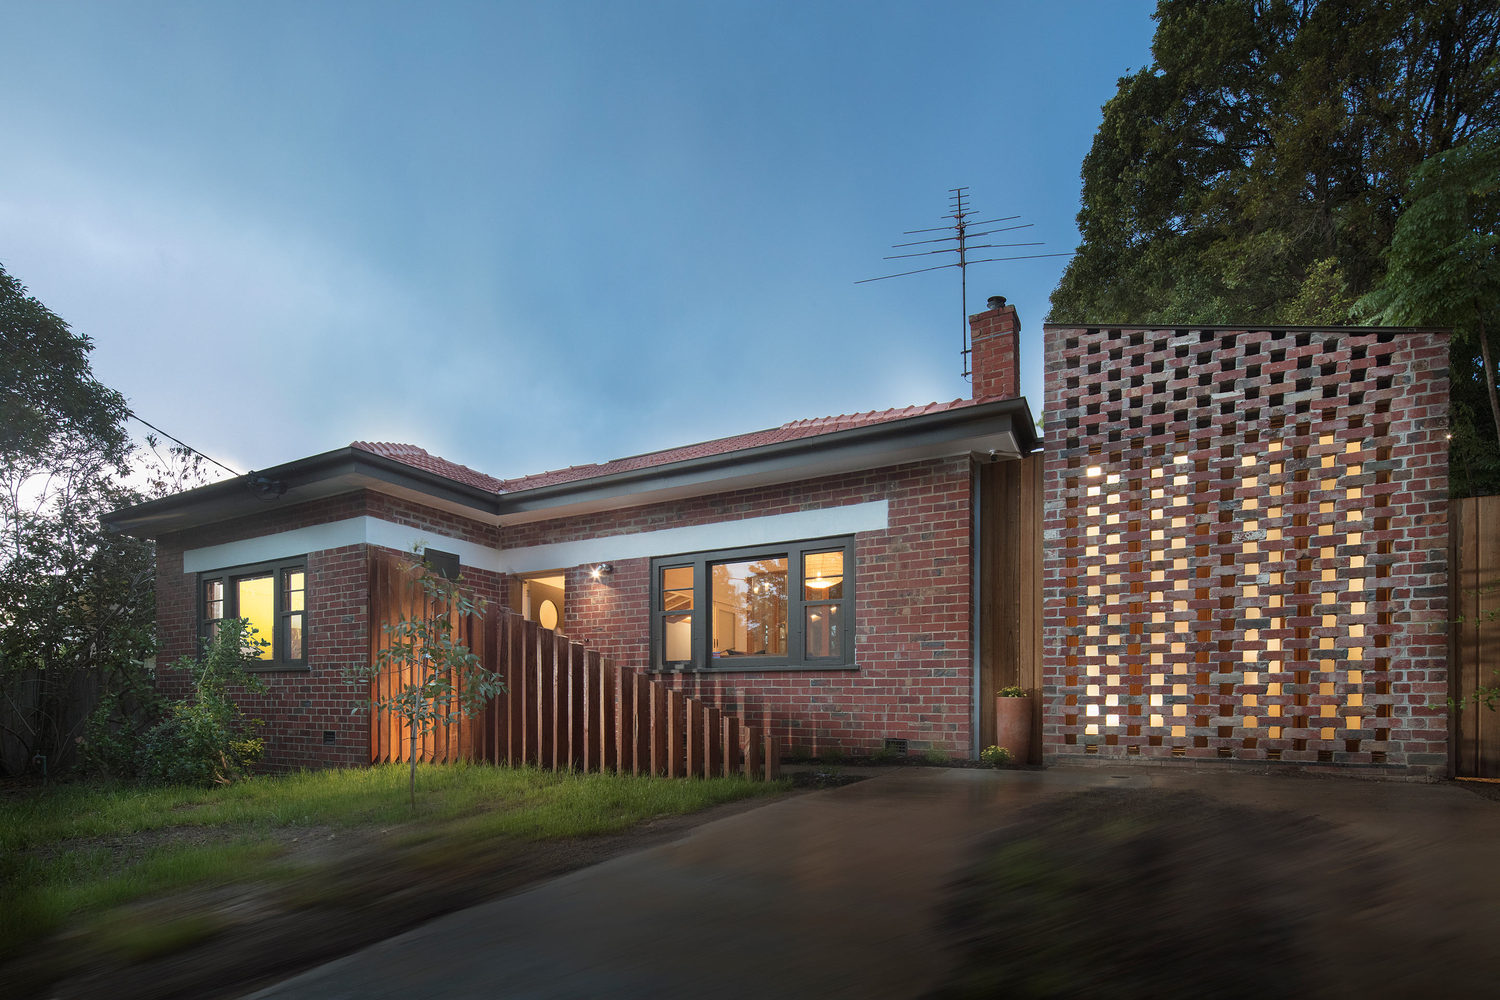 A Renovation that Honours a Beautiful Old Gum Tree in the Backyard